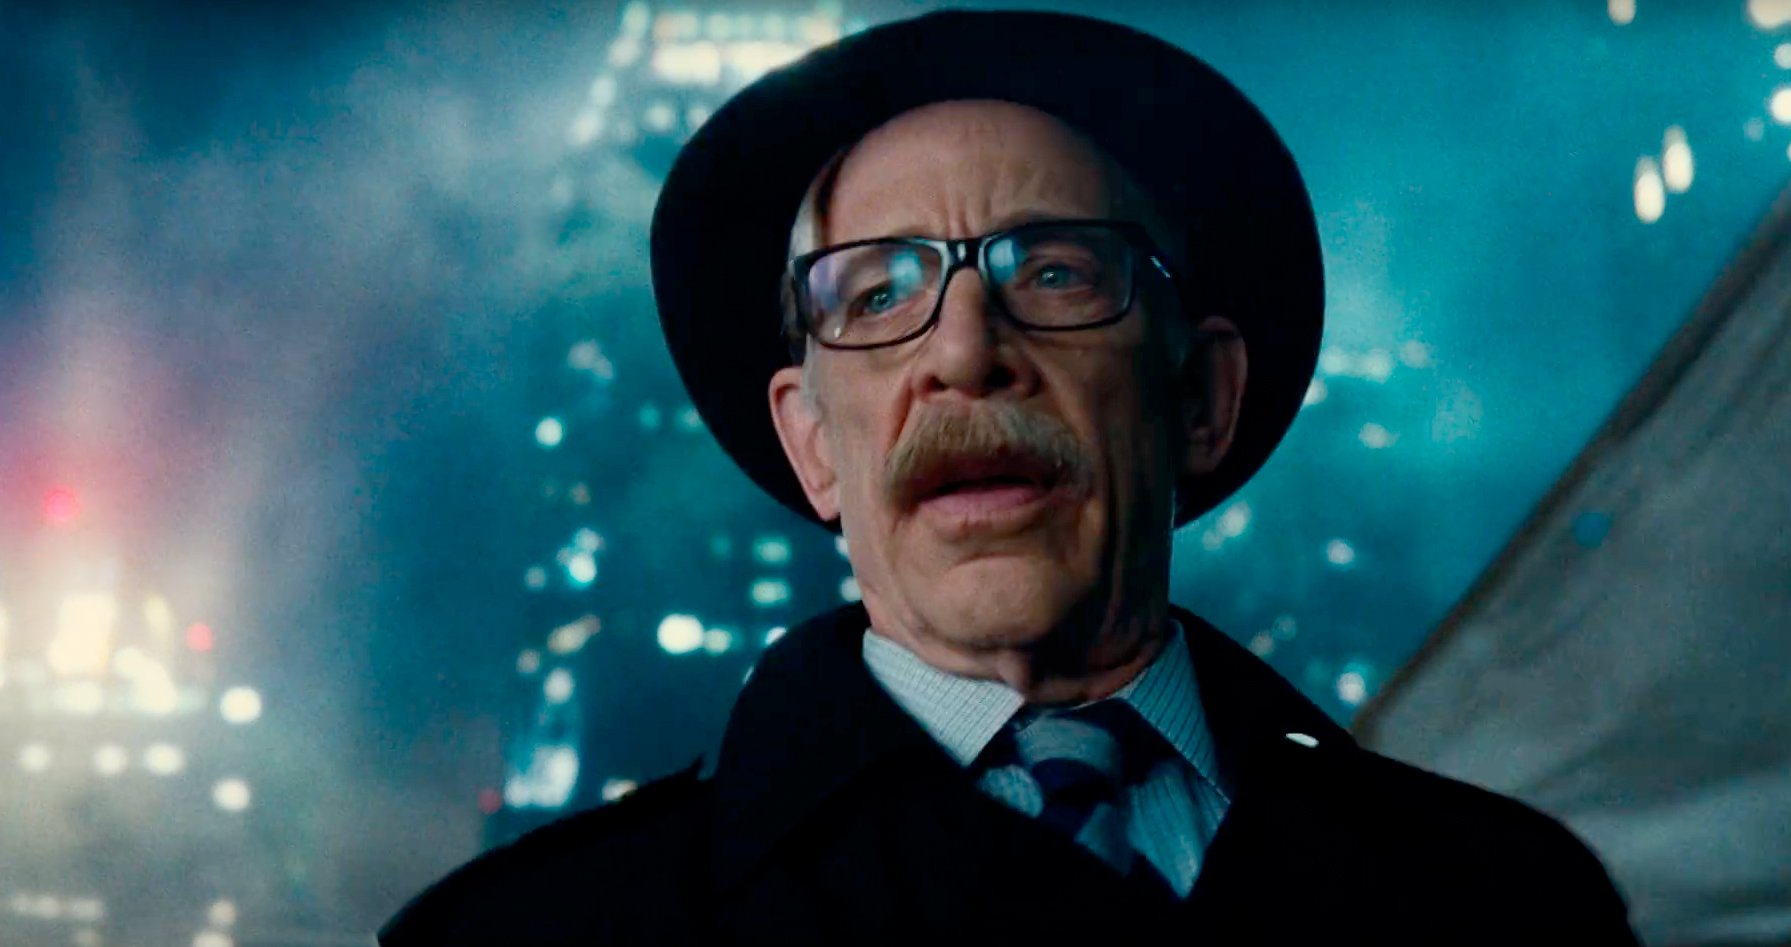 Batgirl Might See The Return Of J.K. Simmons As Commissioner Gordon